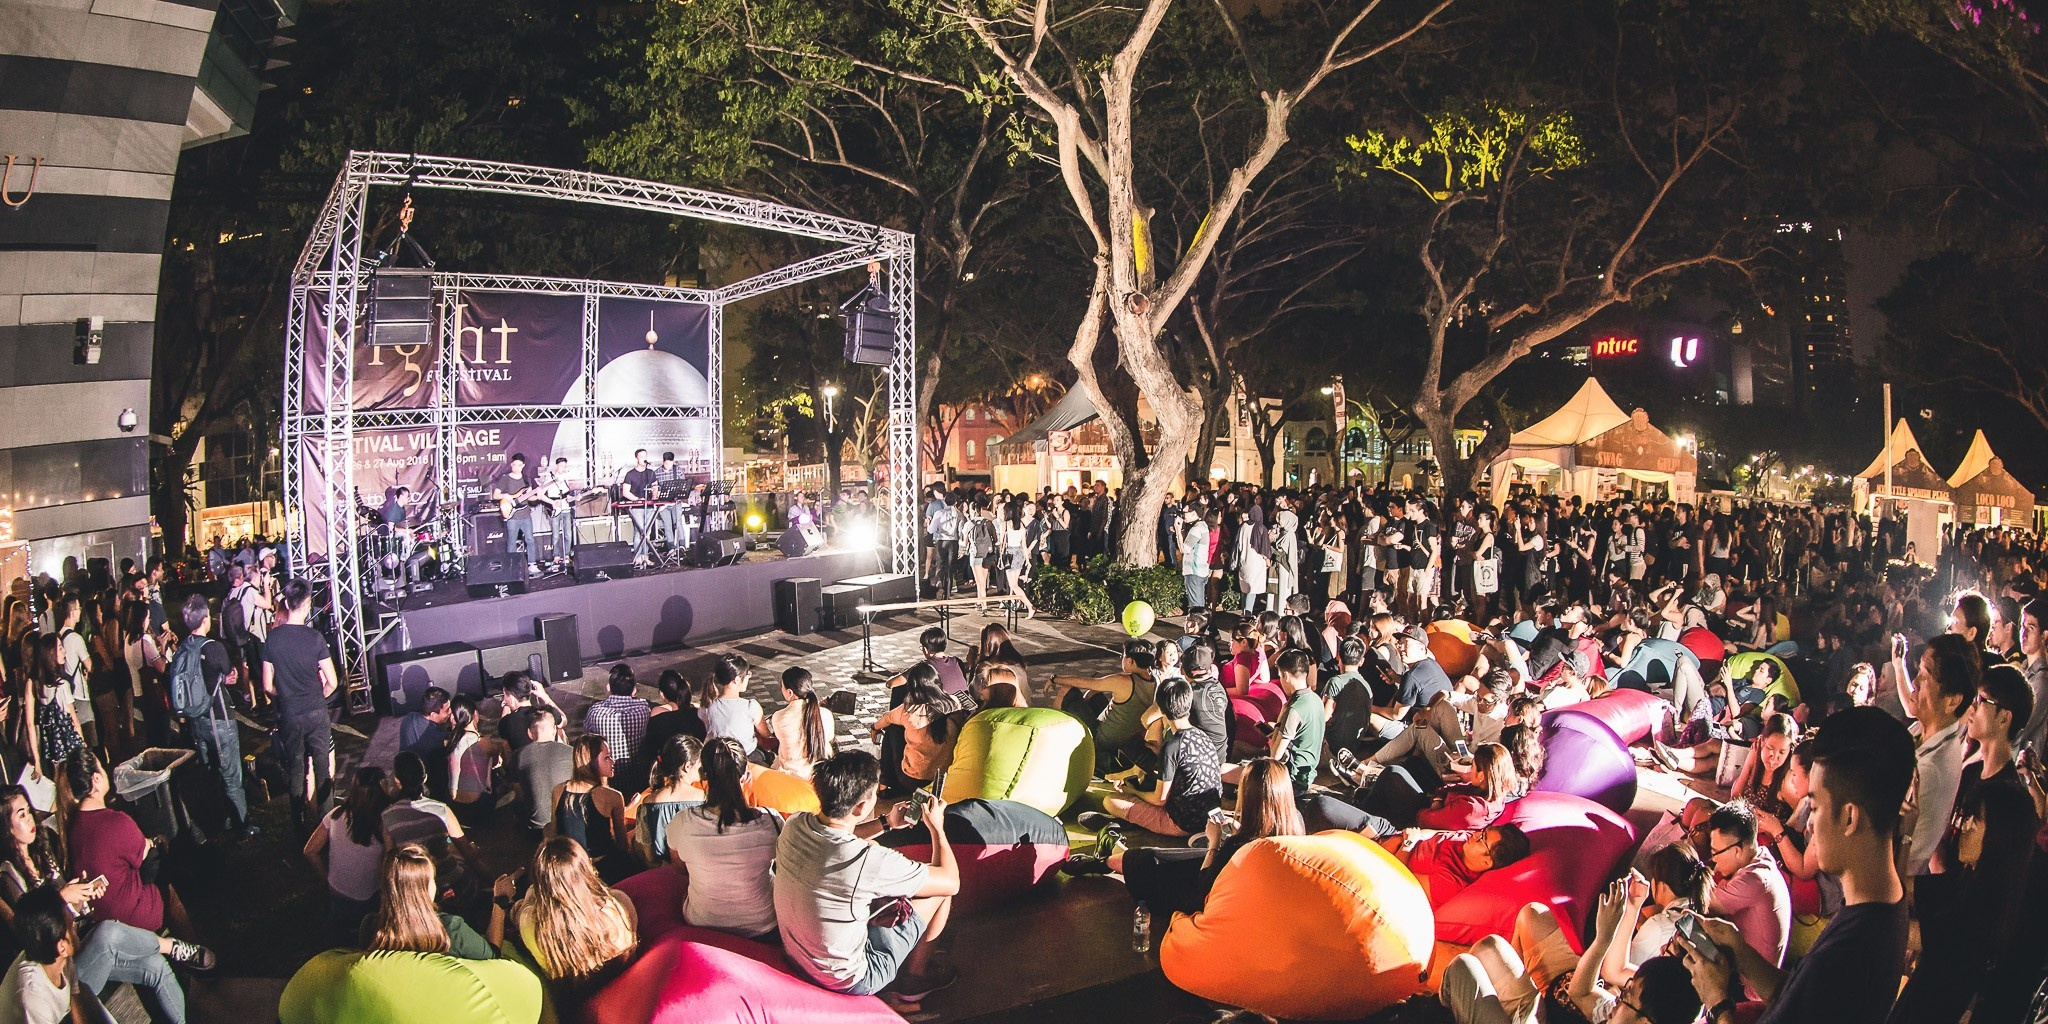 Singapore Night Festival celebrates 10th anniversary welcoming past artists